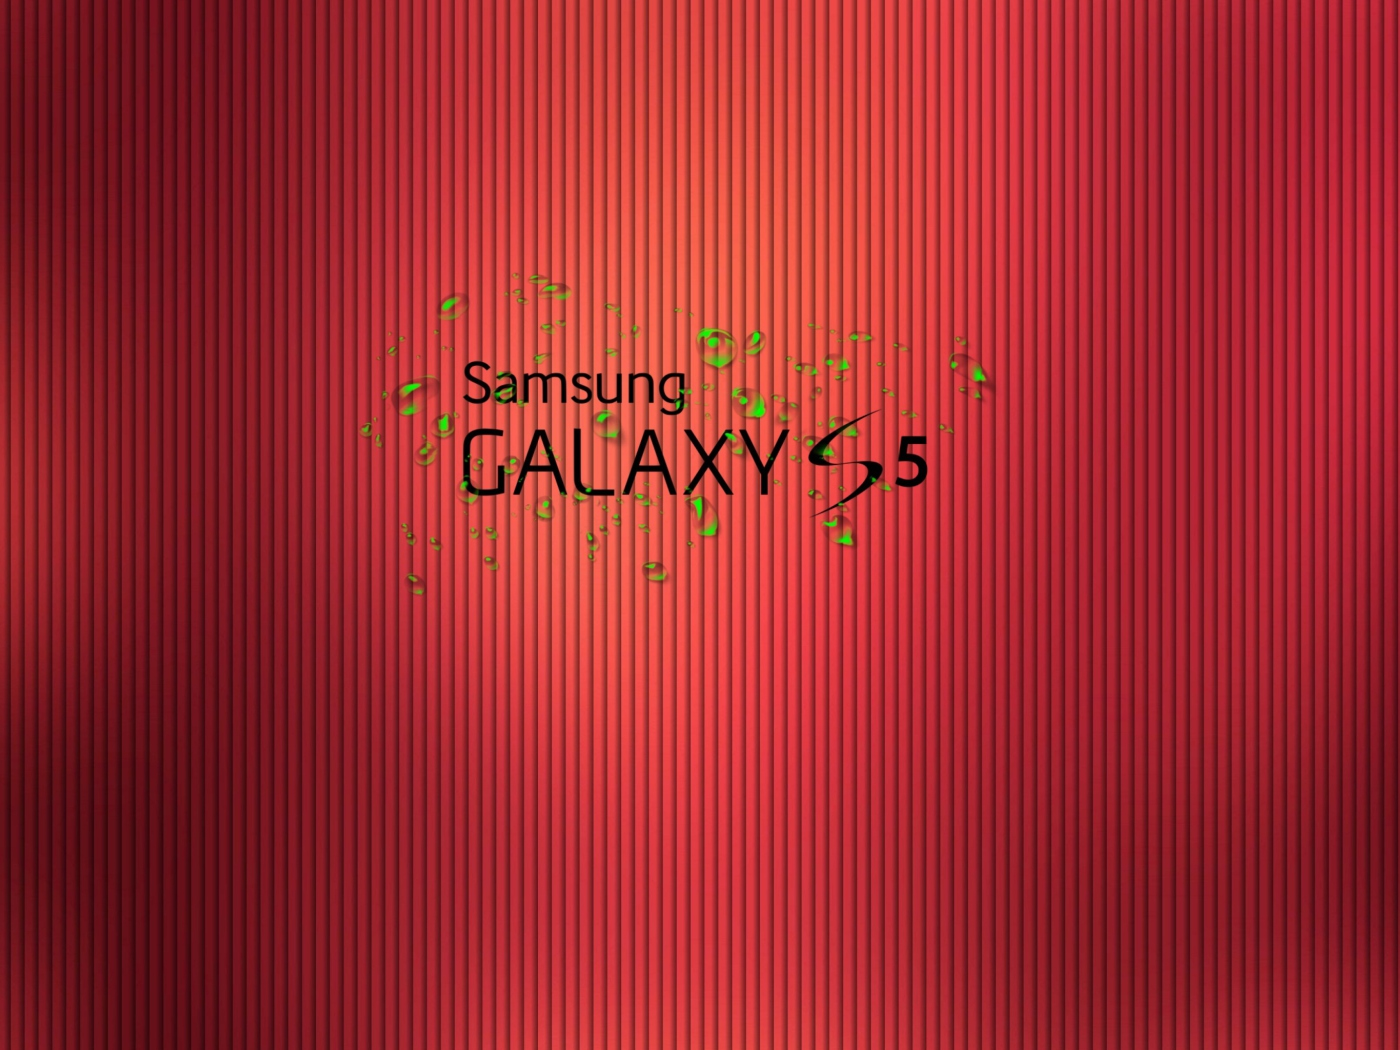 Galaxy S5 wallpaper 1400x1050